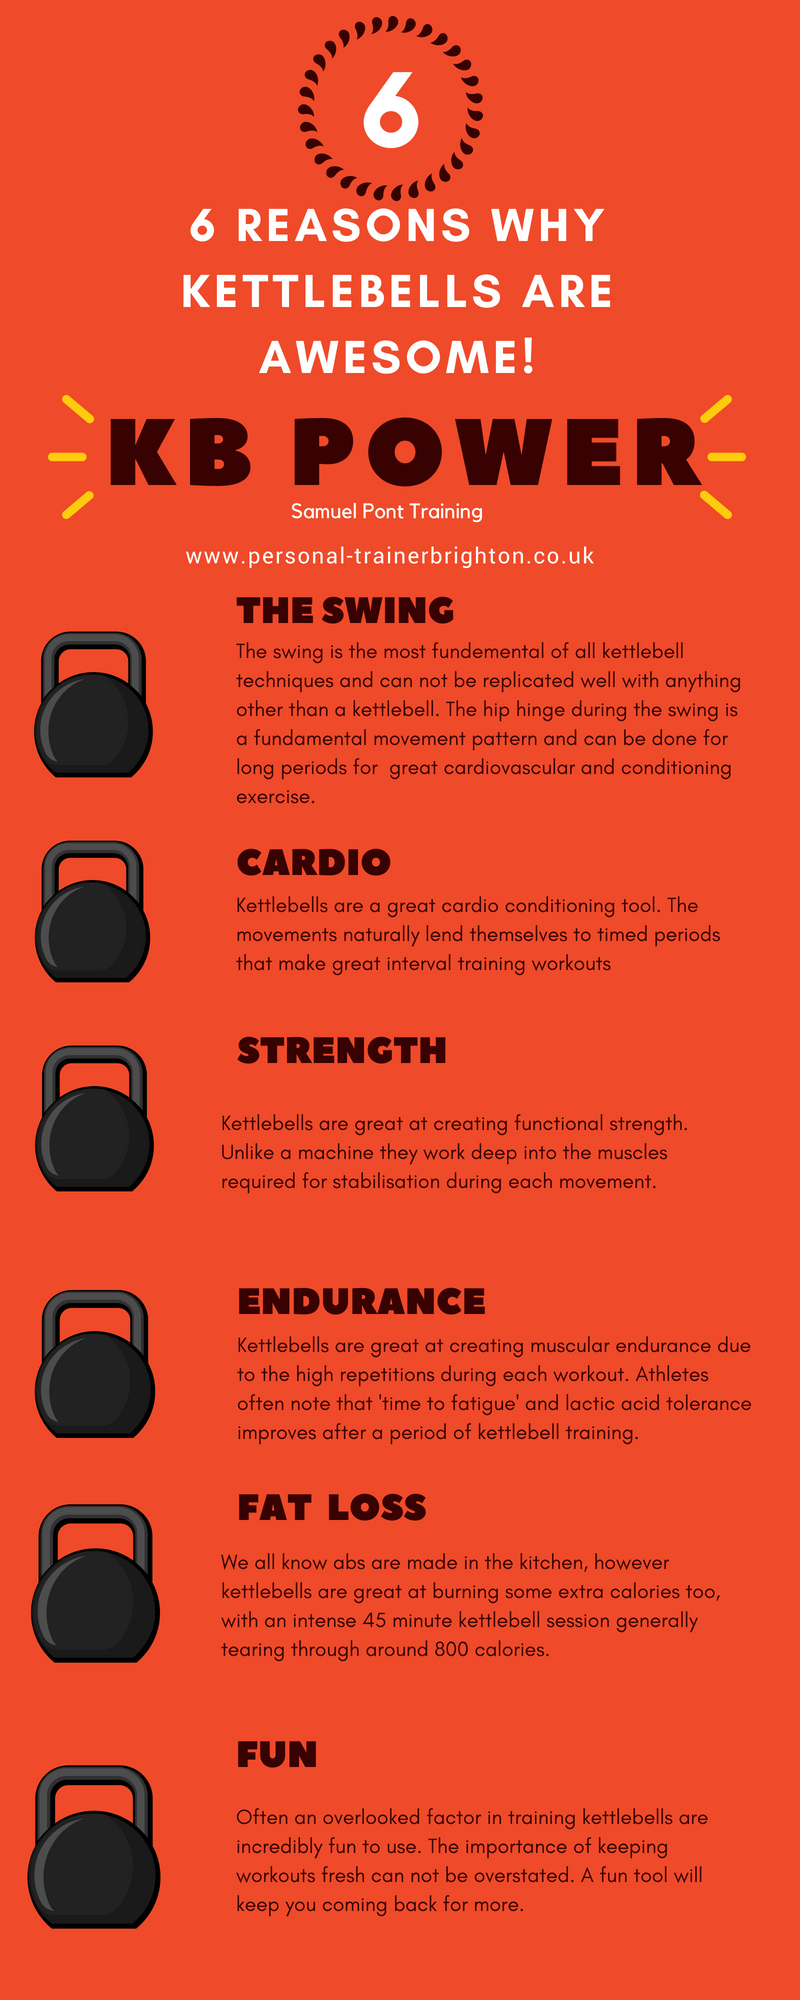 Kettlebells a great tool for personal training and all-round fitness